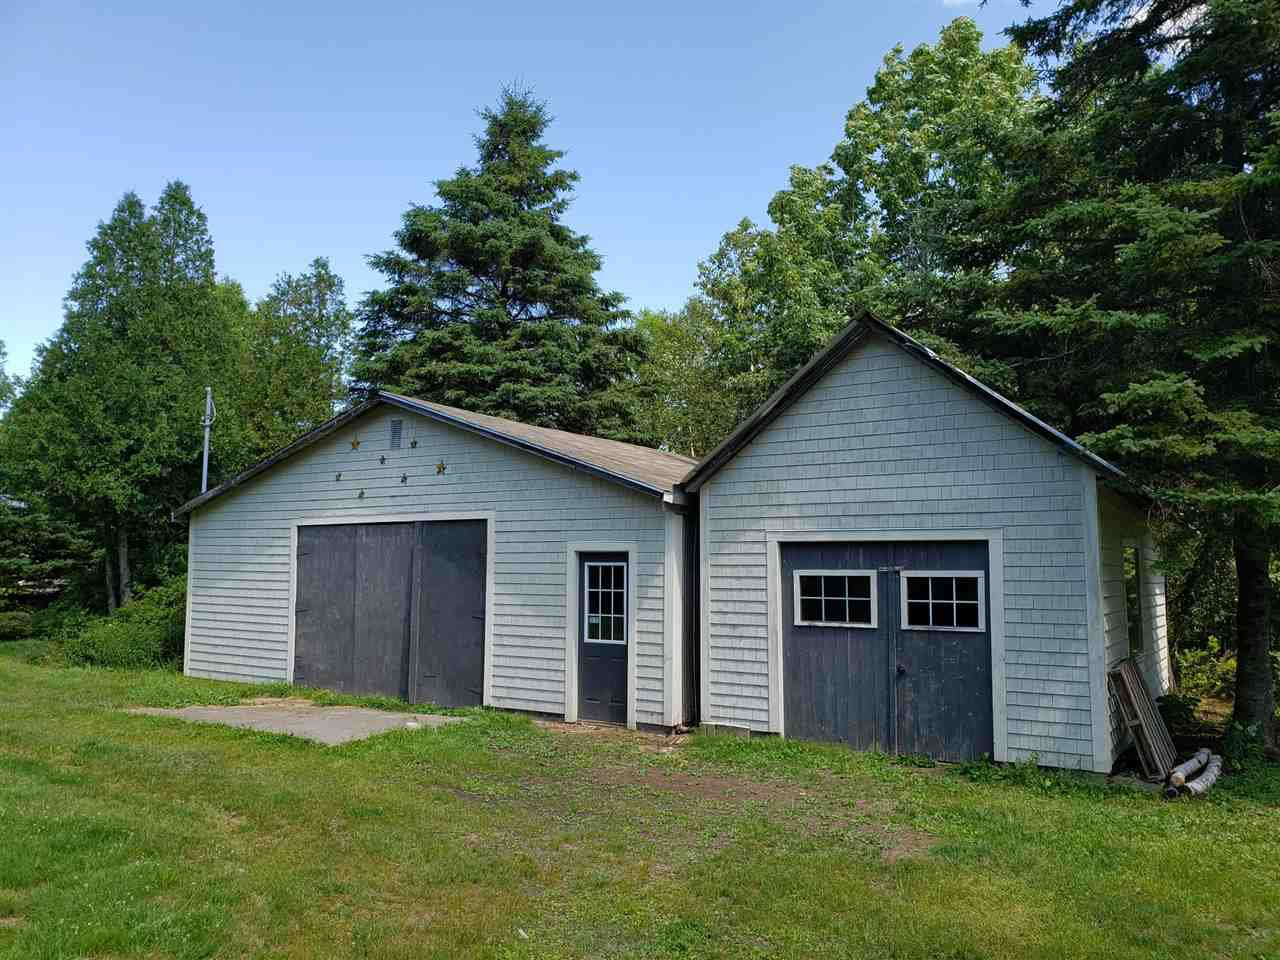 Photo 4: Photos: 2968 Aylesford Road in Lake Paul: 404-Kings County Residential for sale (Annapolis Valley)  : MLS®# 201915287